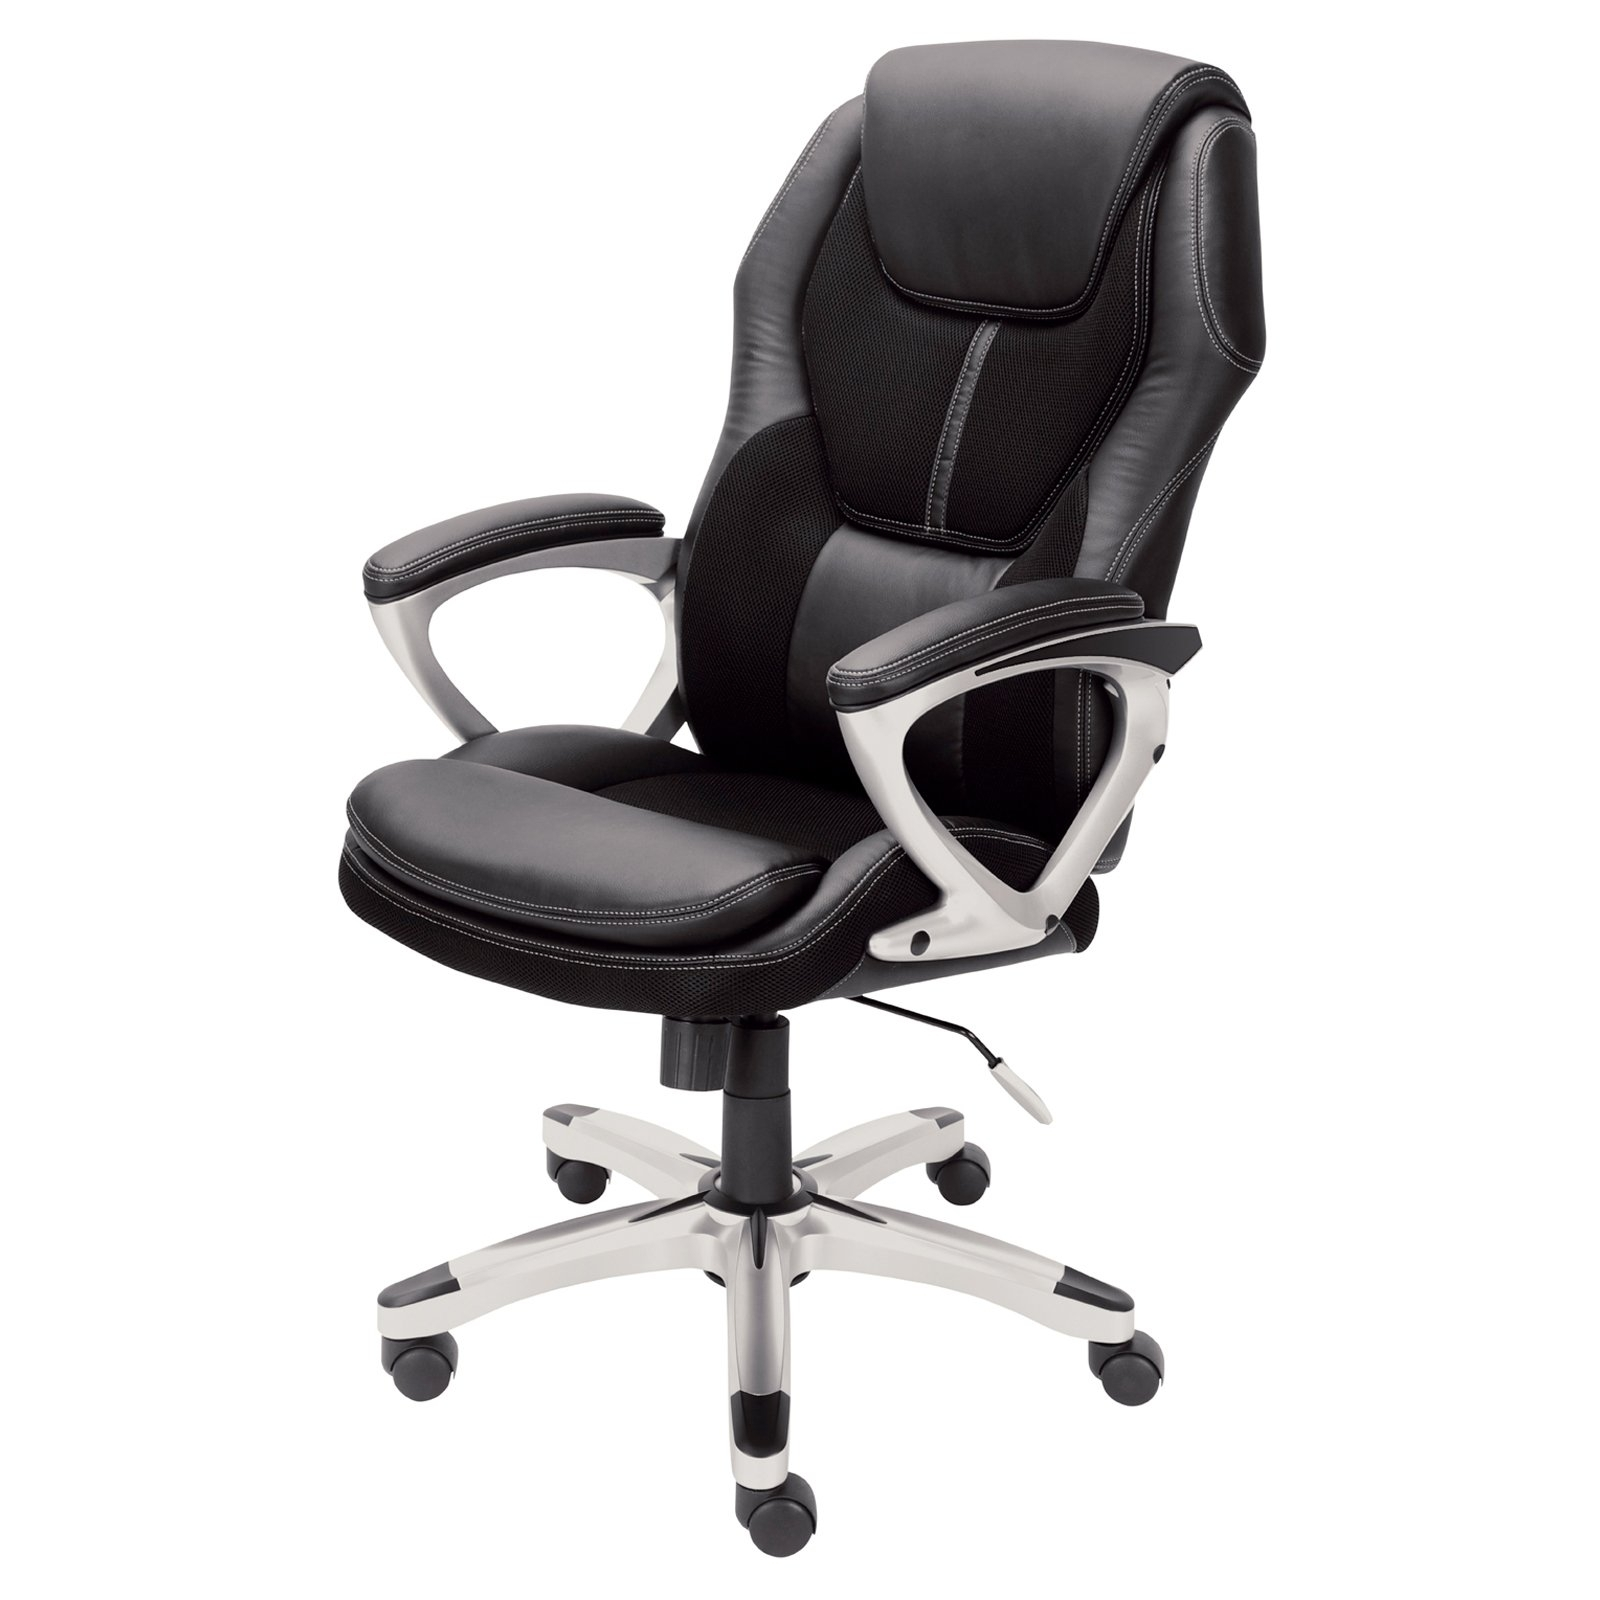 Furniture : Office Side Chairs Office Chair Replacement Parts With Regard To Favorite Executive Office Side Chairs (View 12 of 20)